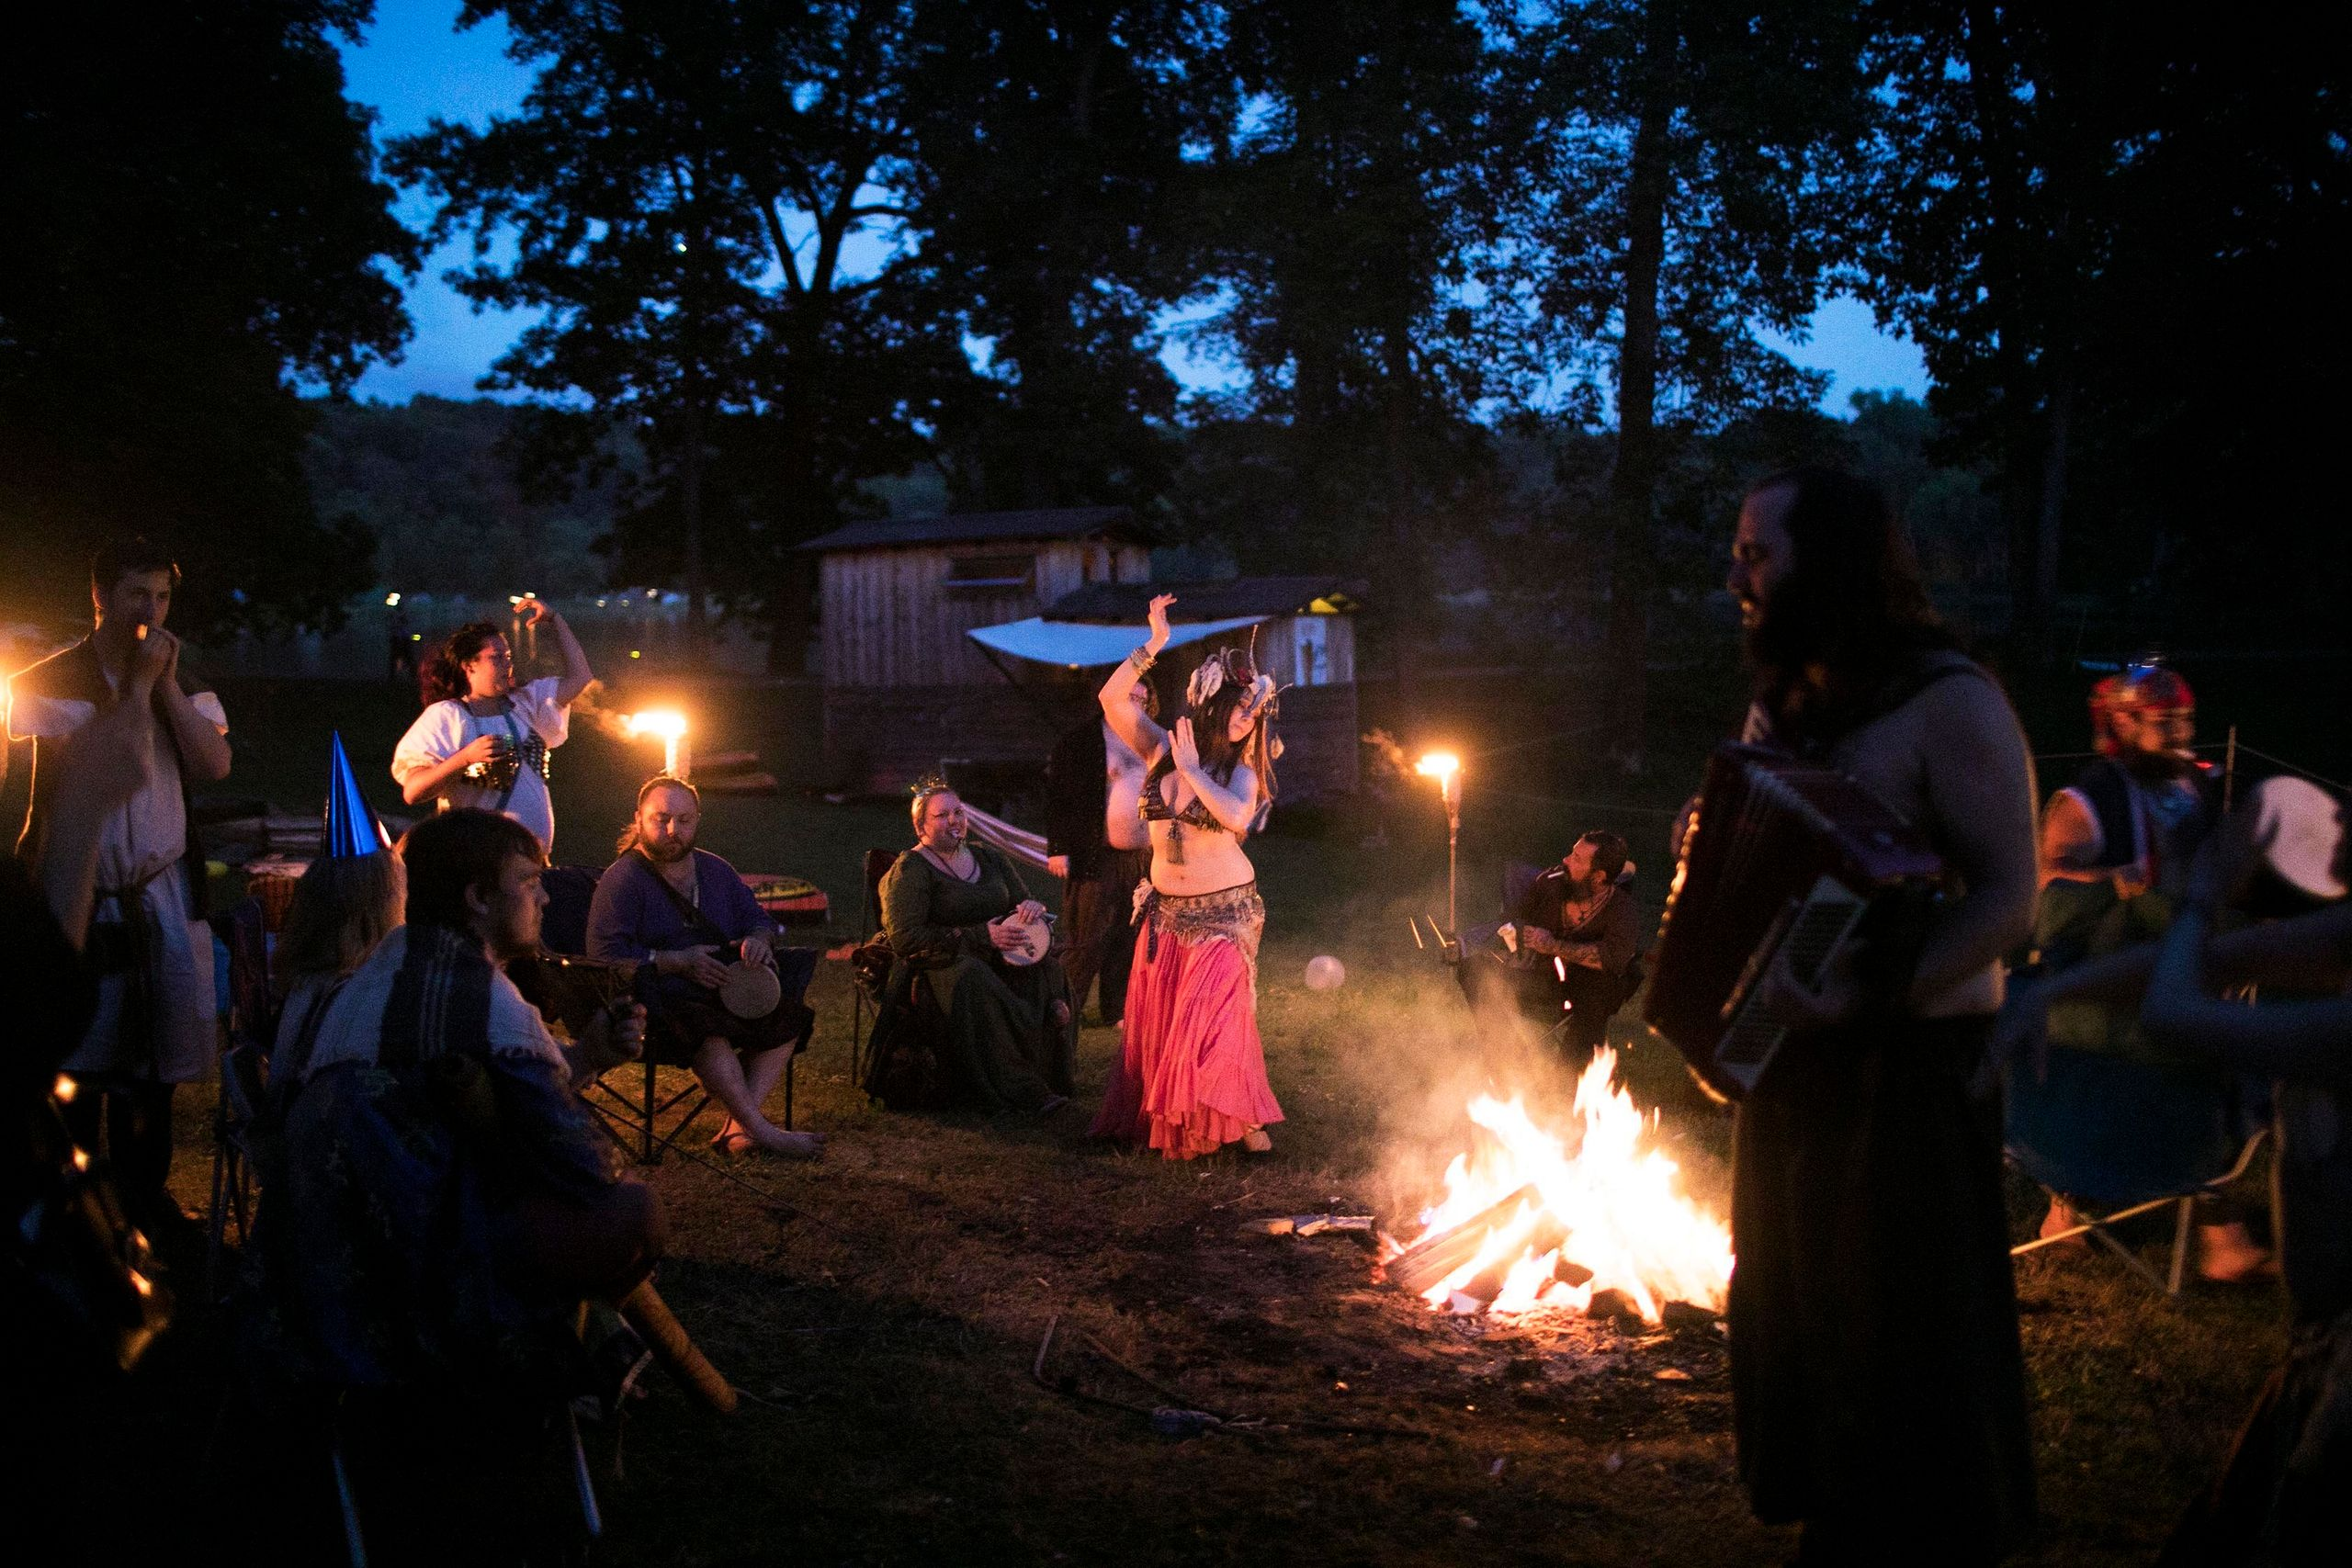 Rag attendees drink, dance and make merriment around the fire at an after-hours campout.